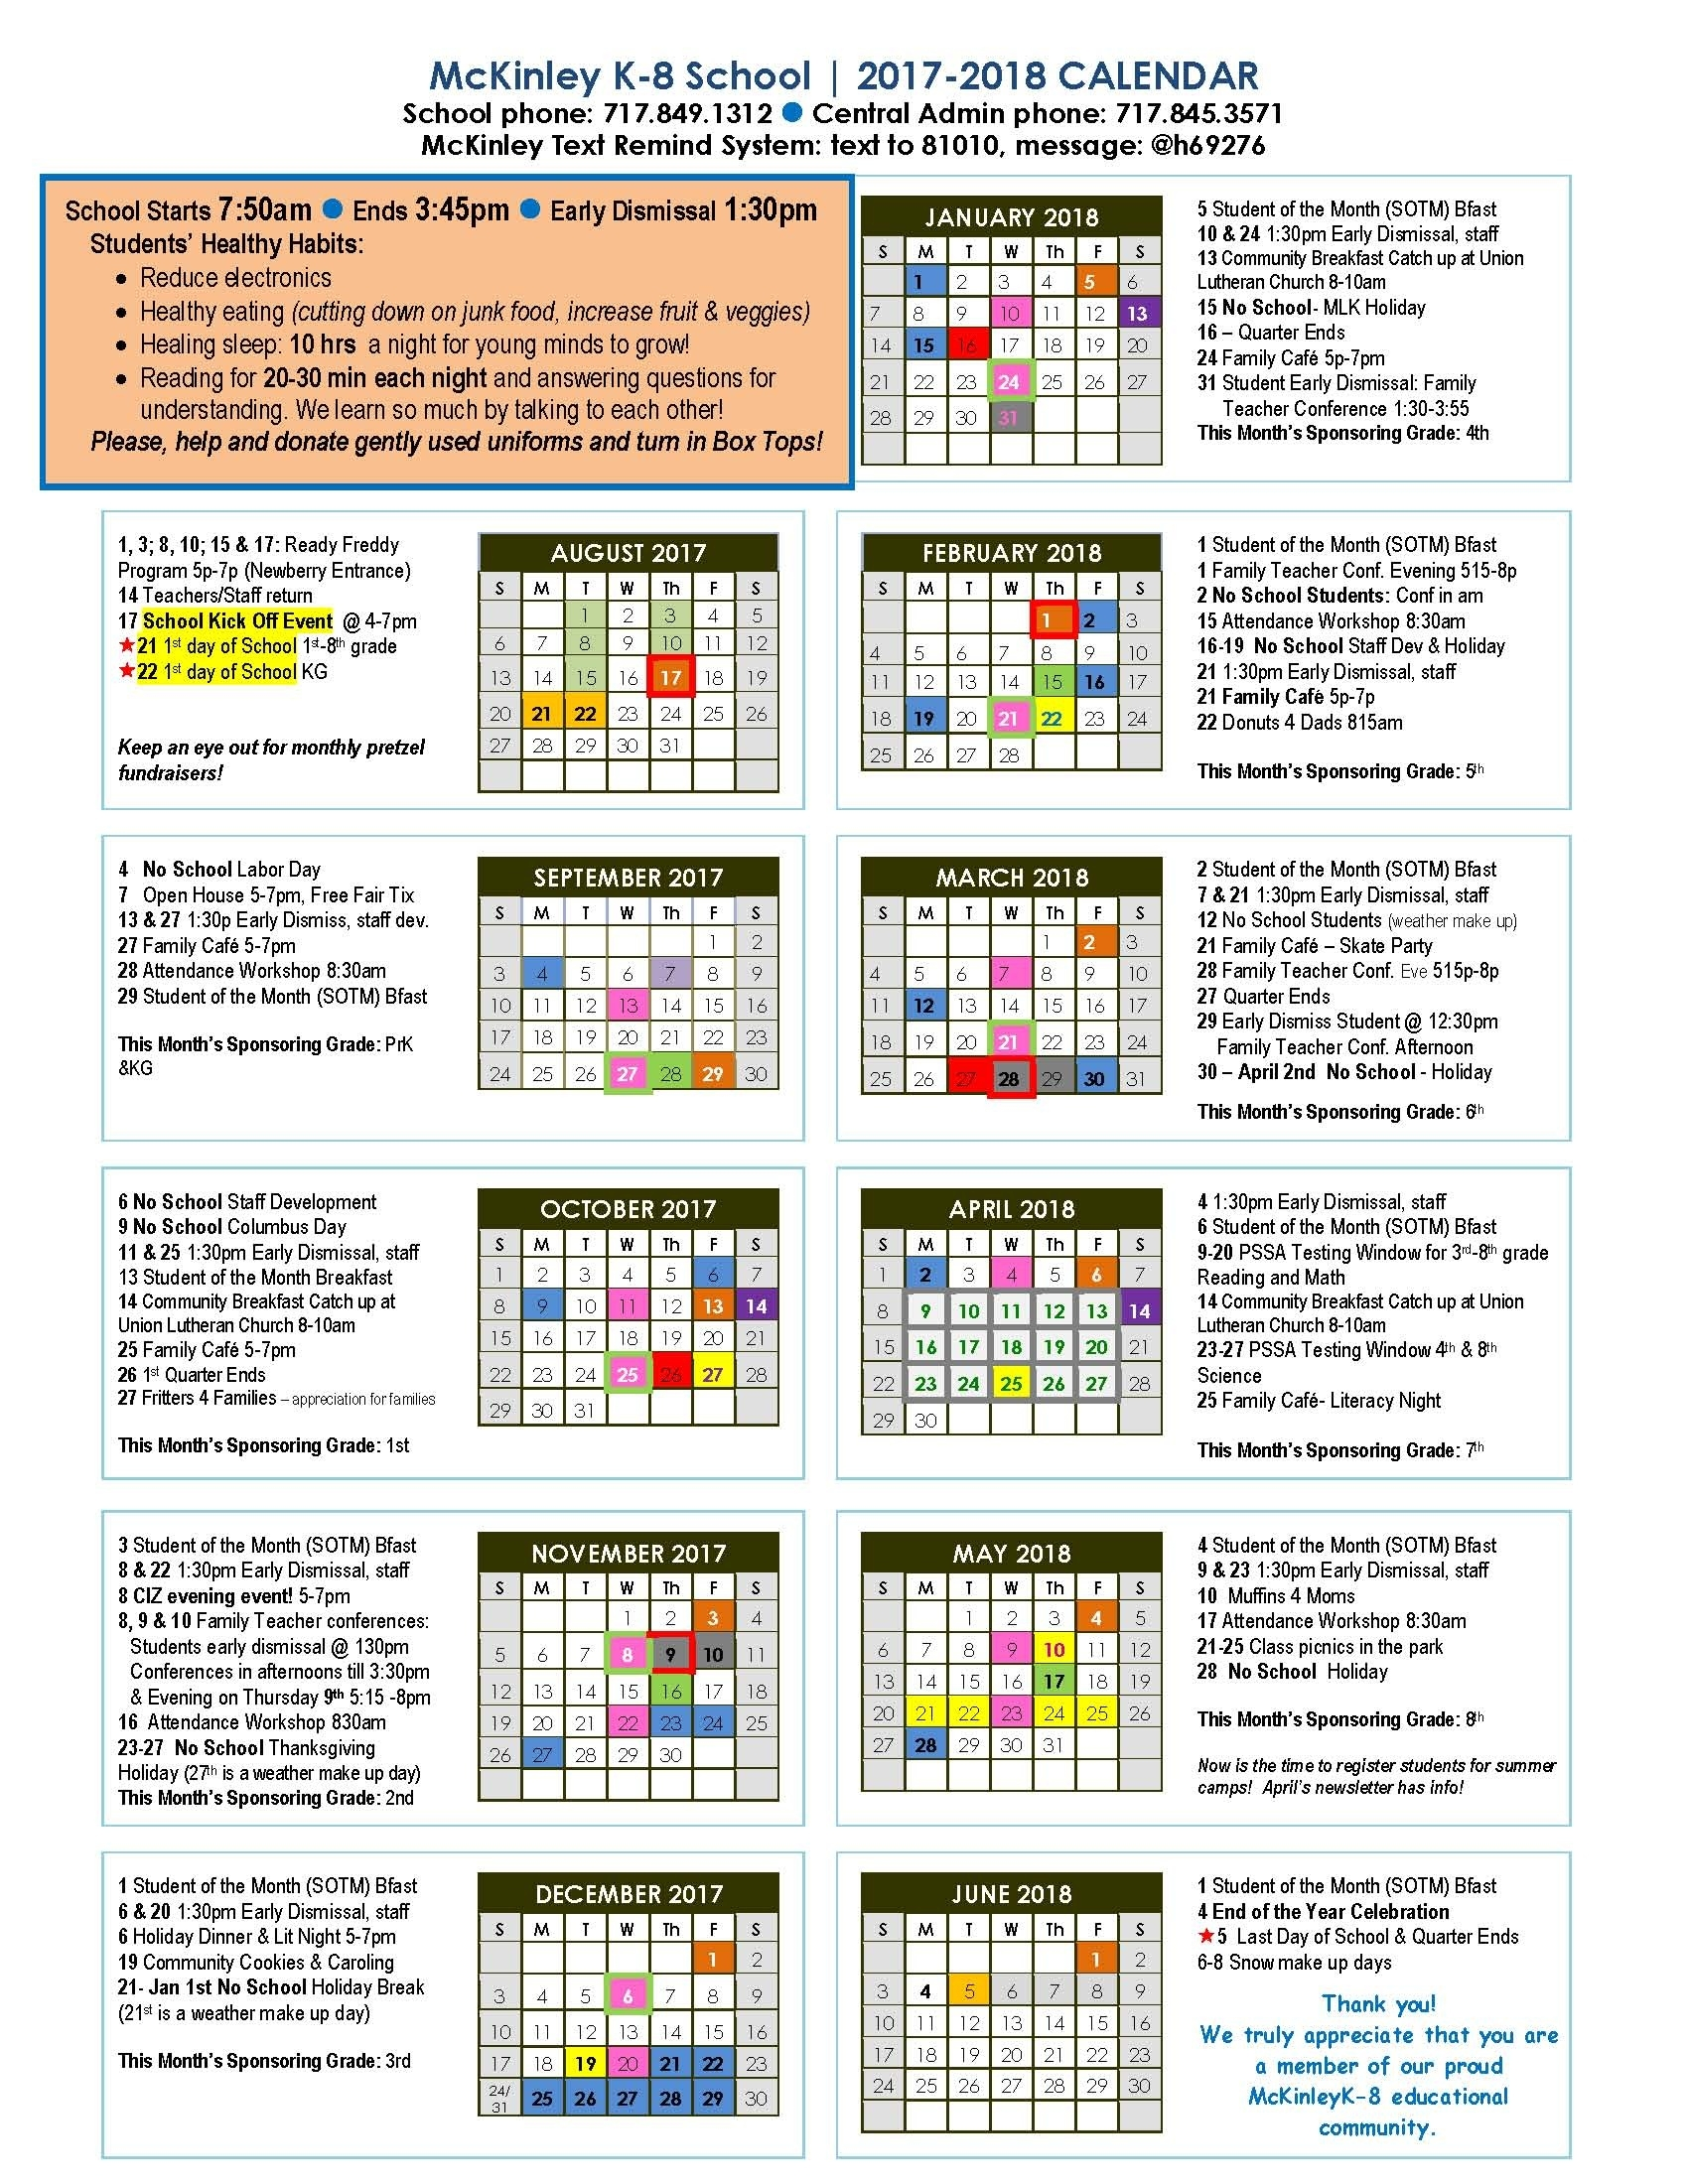 The Mckinley 2017-18 Calendar Is Here! | Mckinley K - 8_Celebration K-8 School Calendar